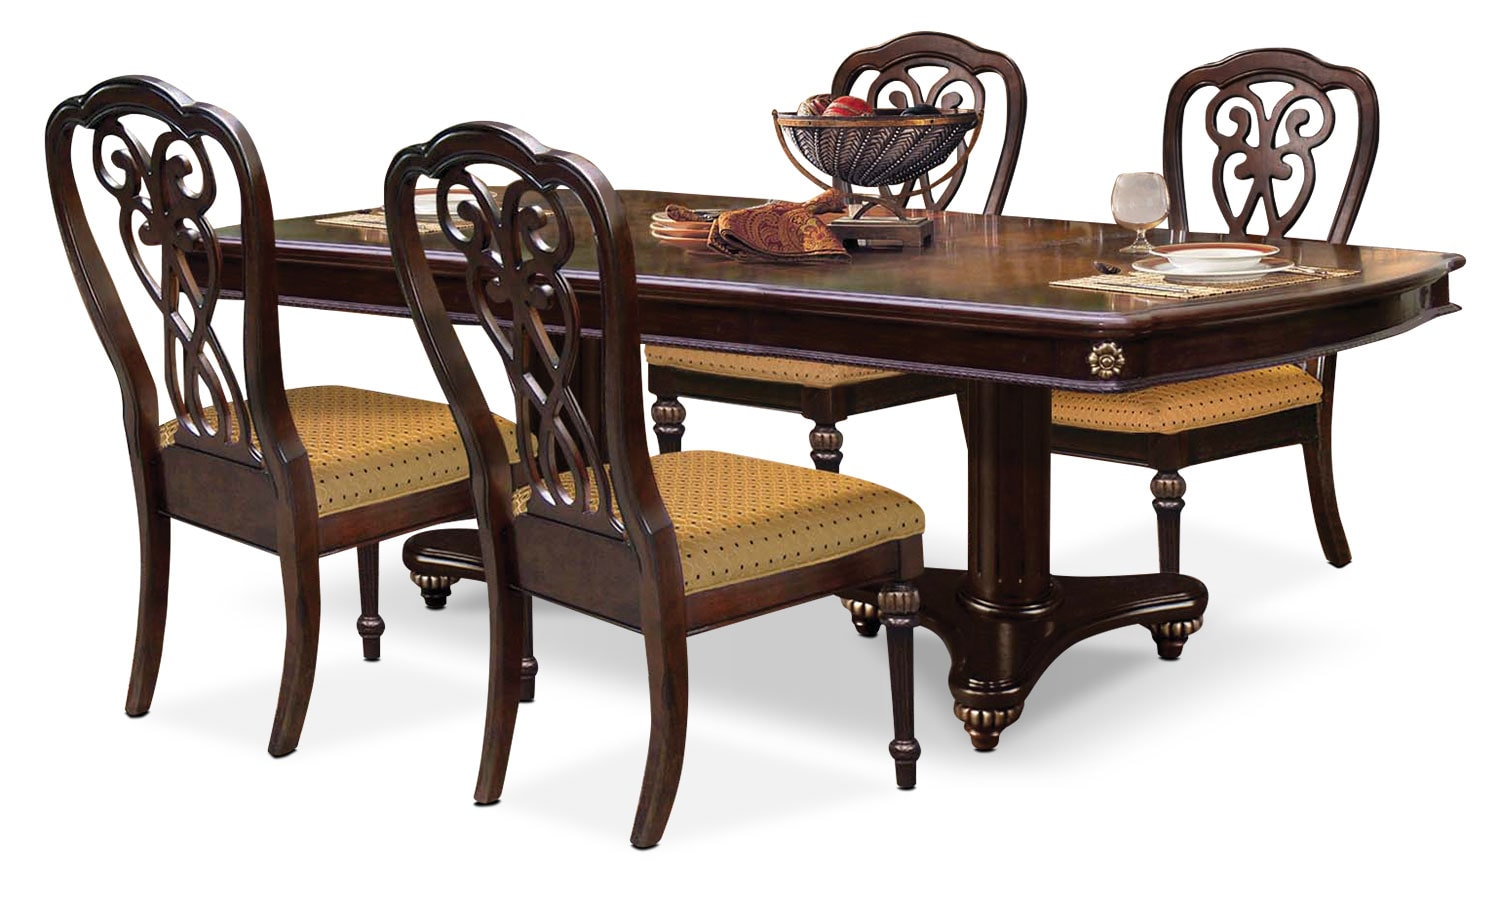 Dining Room Furniture - Newcastle 5-Piece Dining Package